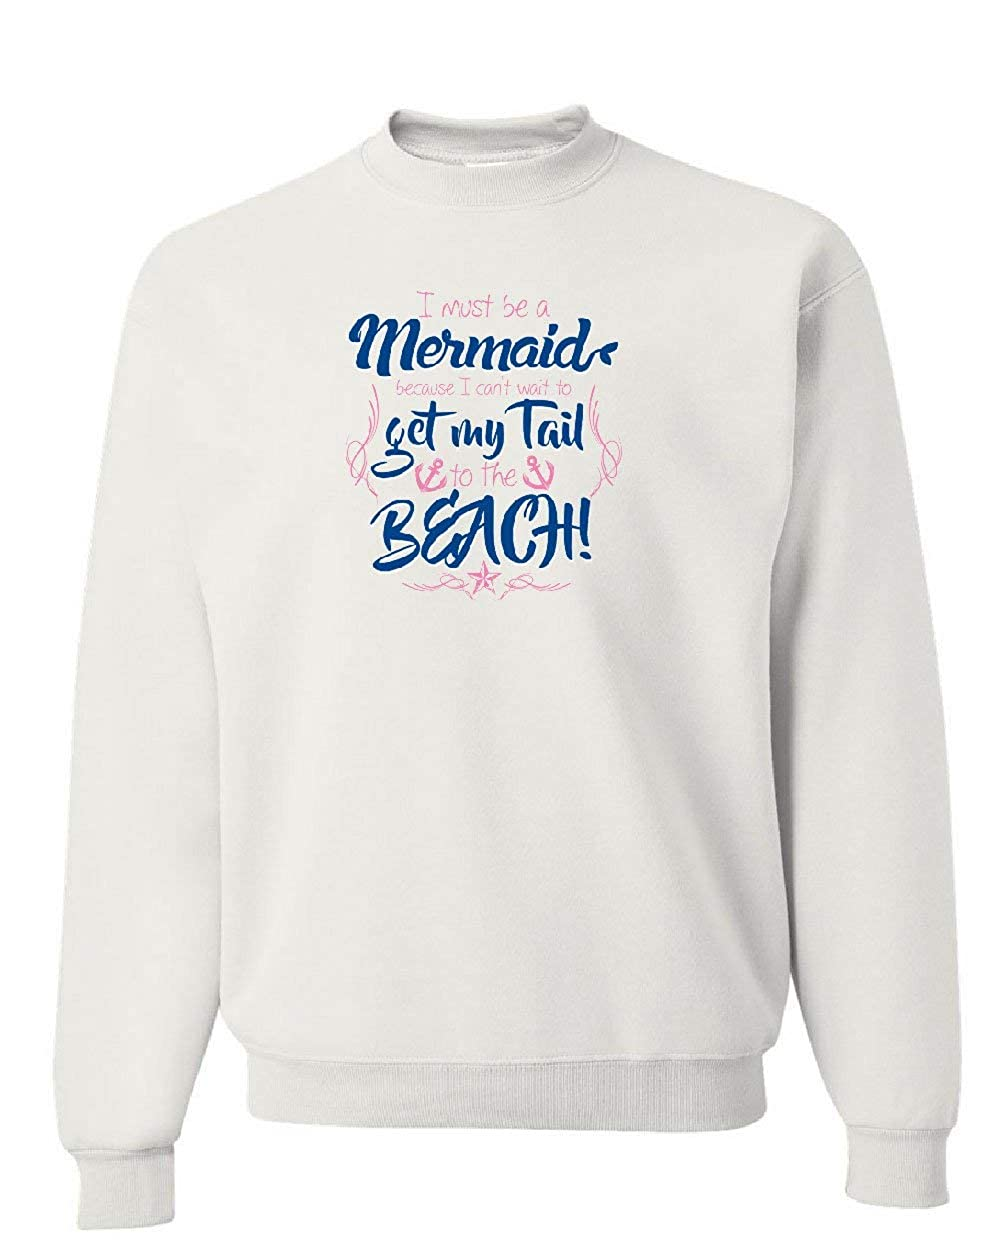 I Must Be a Mermaid Sweatshirt Beach Tourism Funny Summer Vacation Sweater